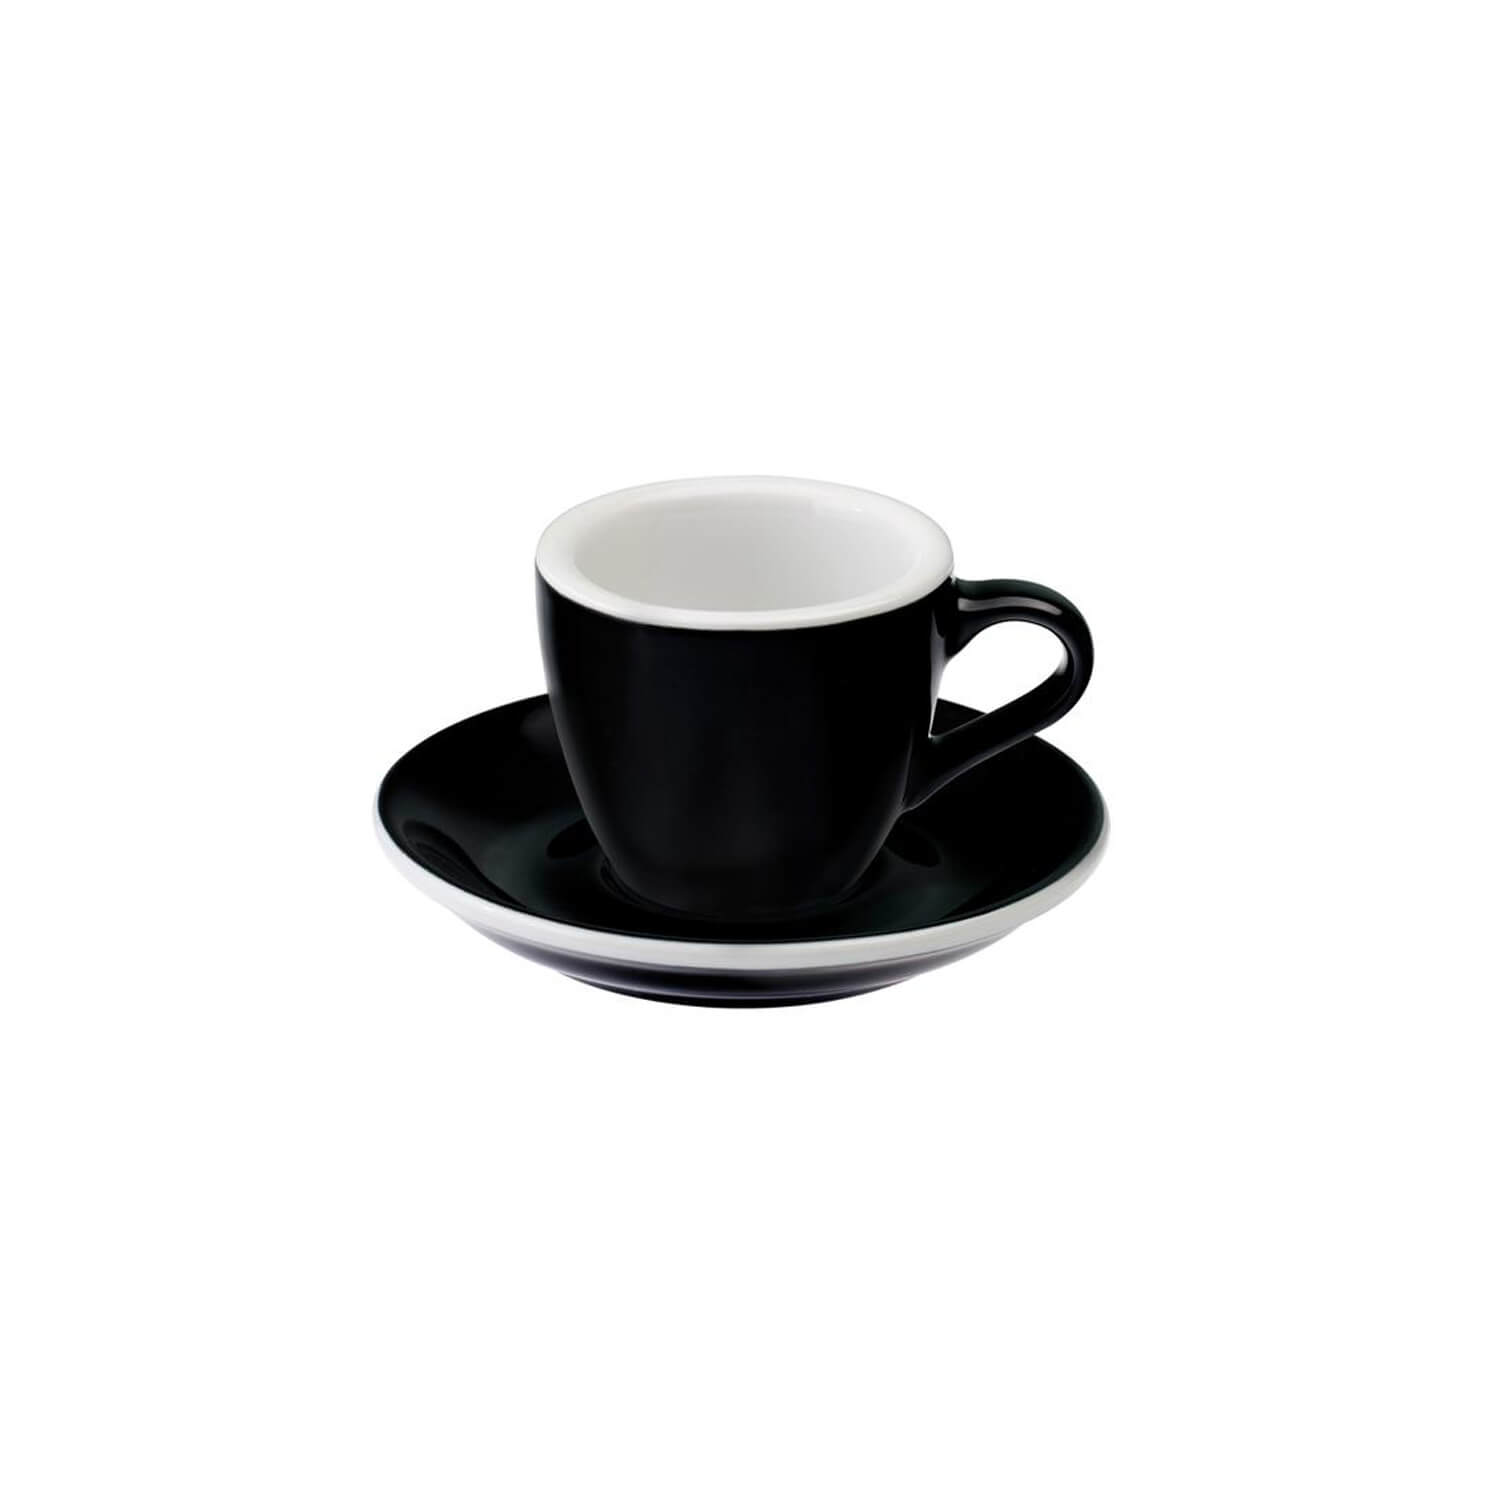 Loveramics - Egg - Espresso cup - black